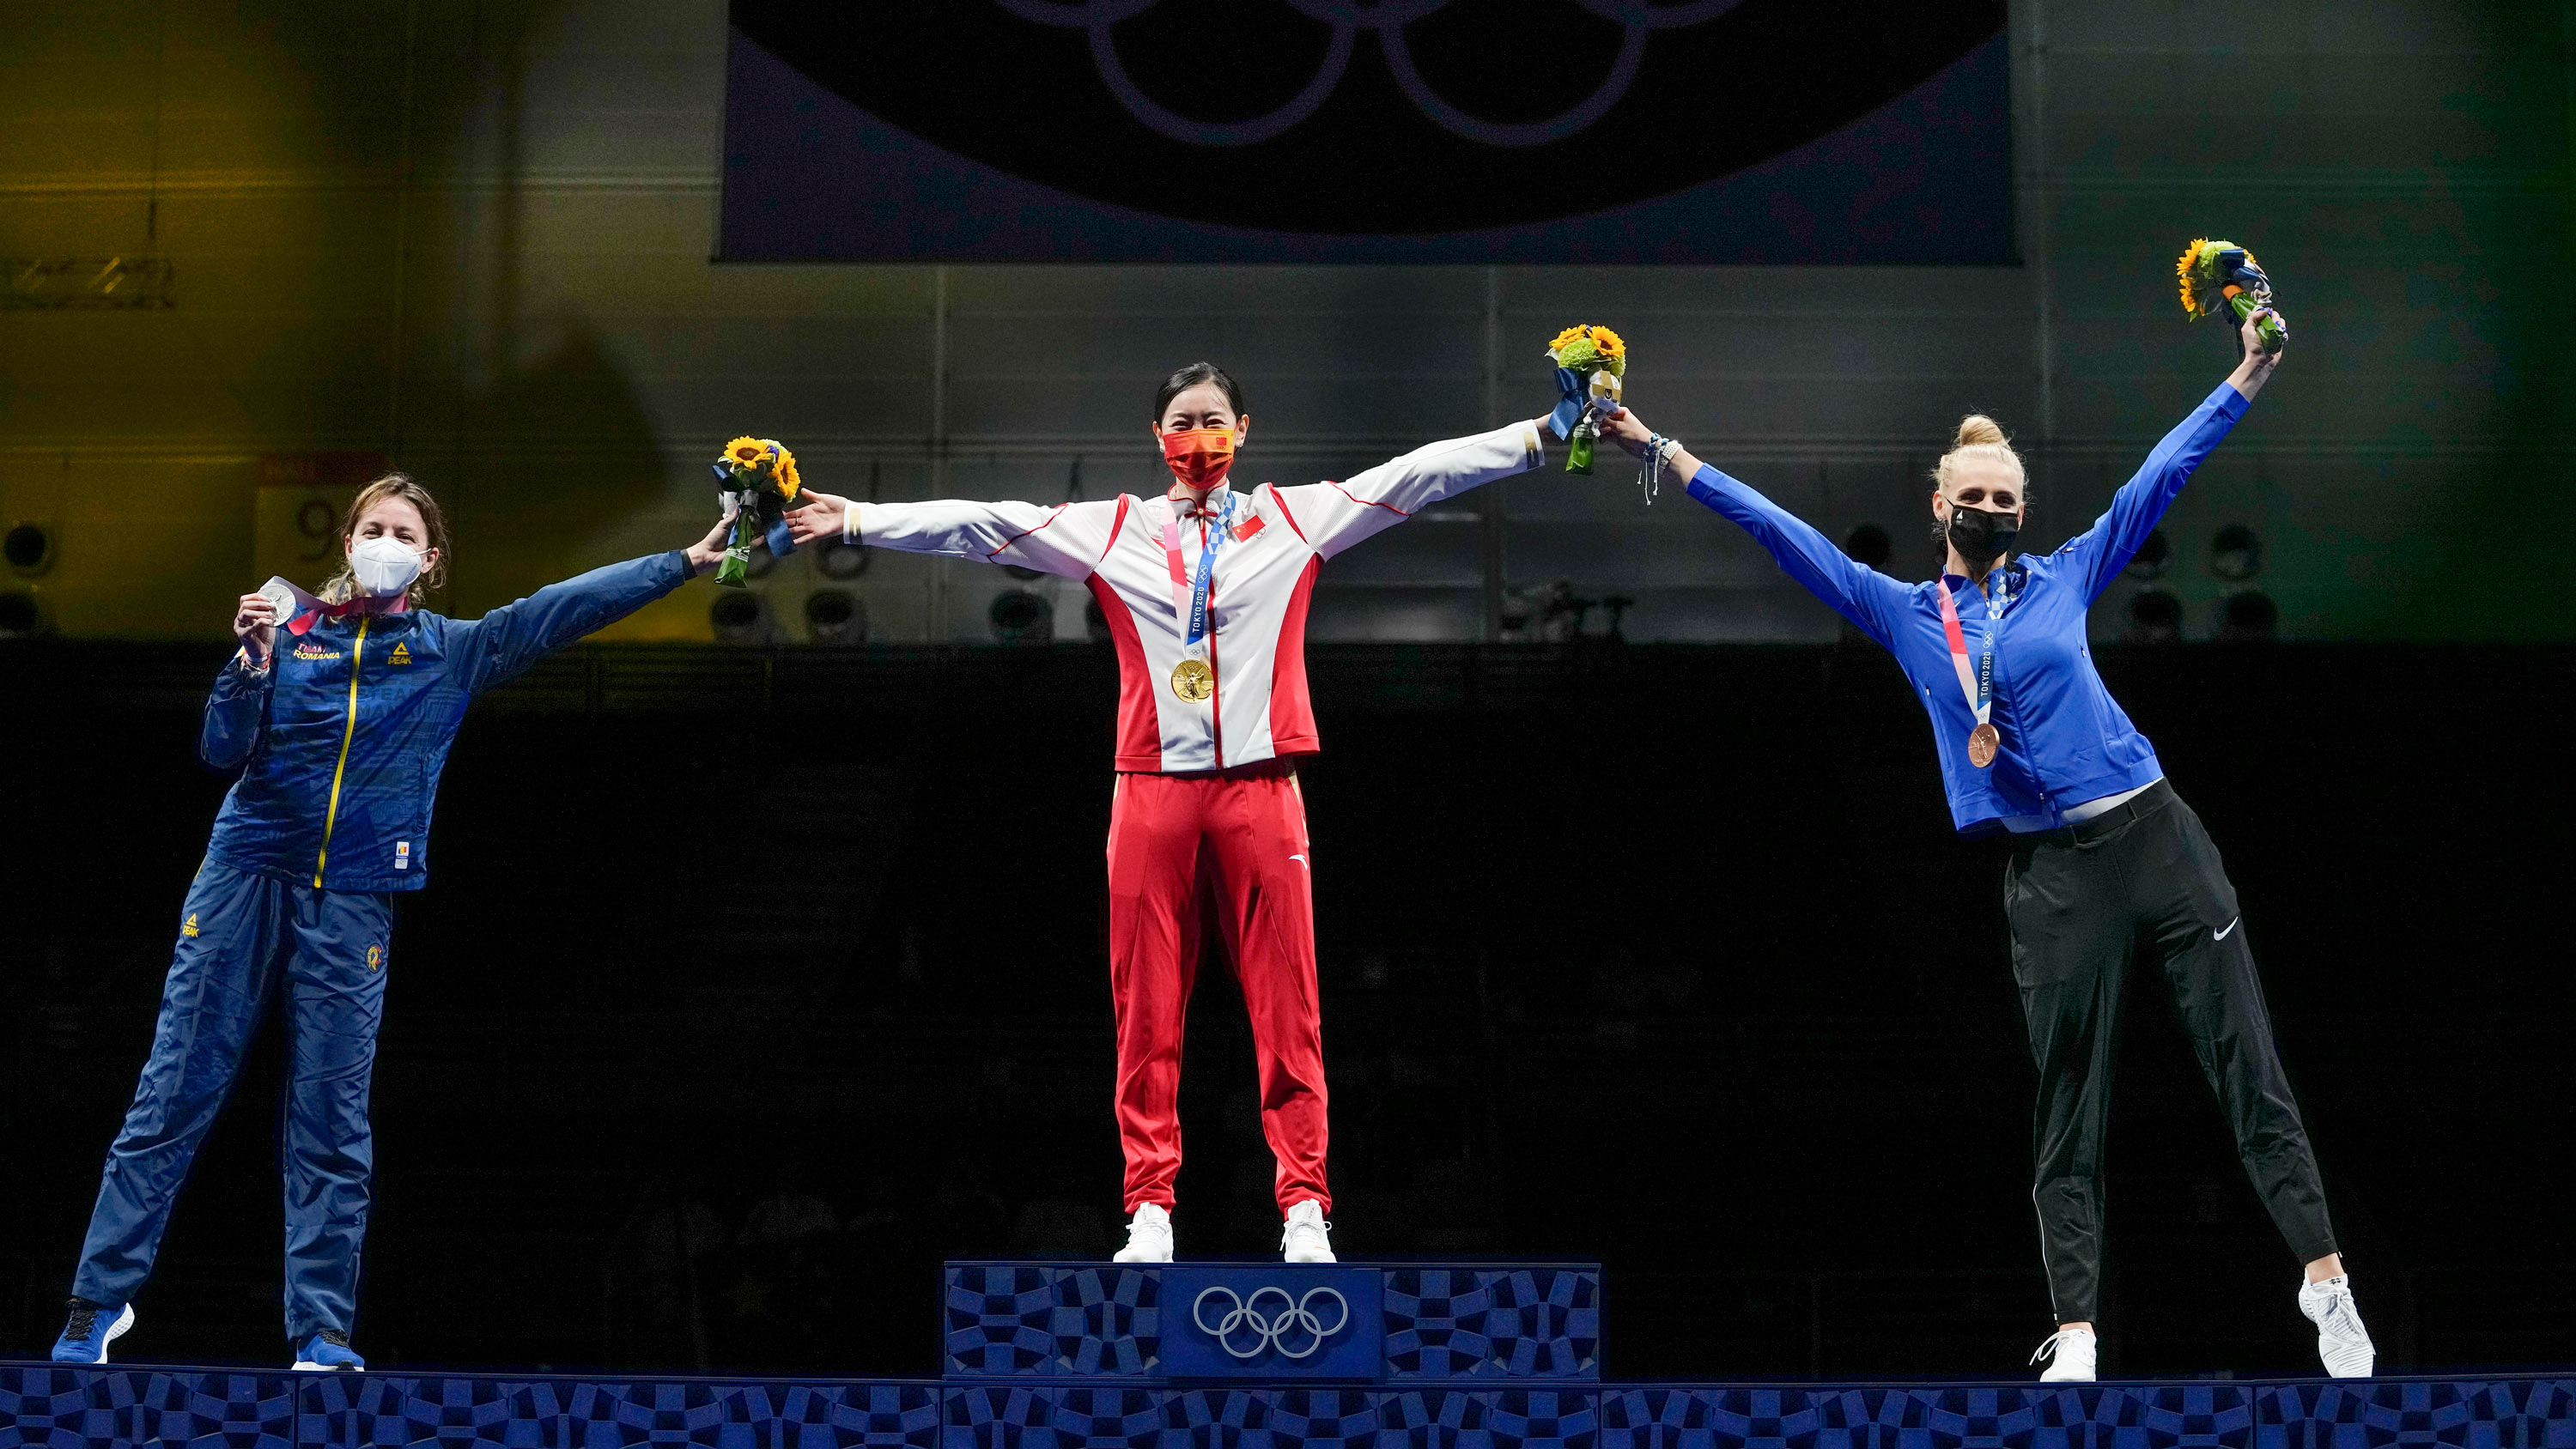 From left, silver medalist Ana Maria Popescu of Romenia, gold medalist Sun Yiwen of China and bronze medalist Katrina Lehis of Estoniac celebrate on the podium of the individual Epee final competition on July 24.